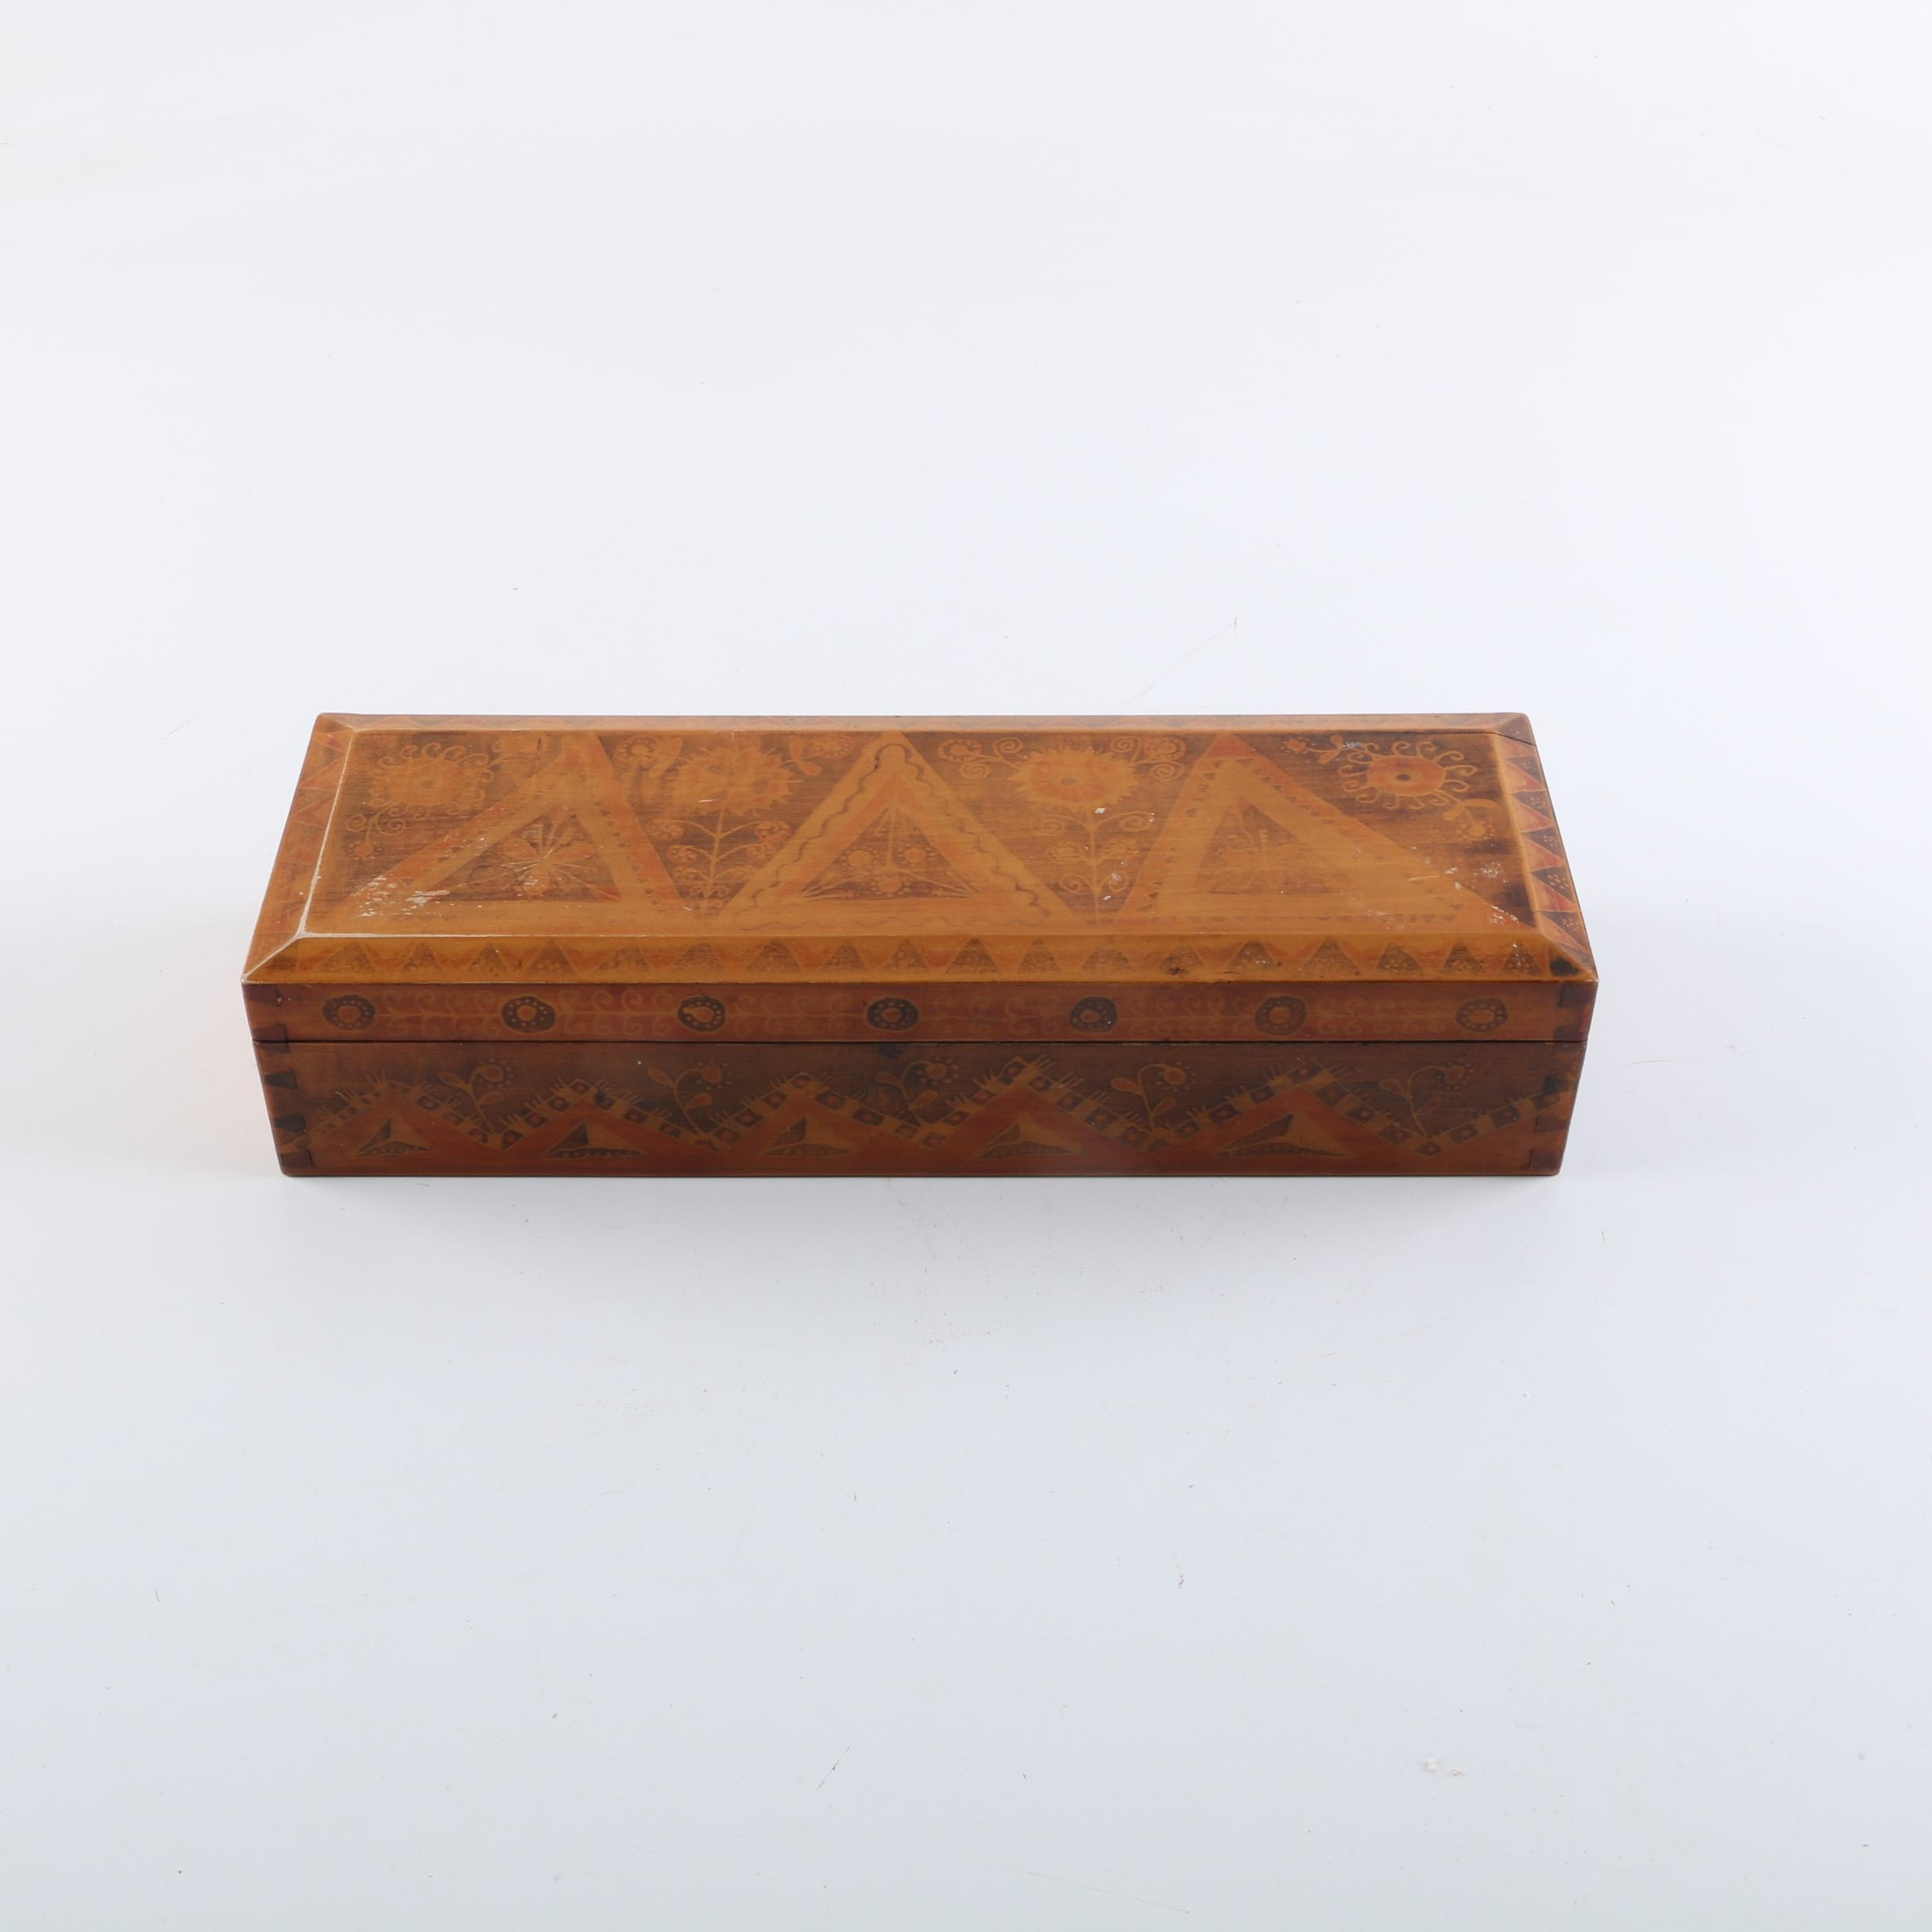 Vintage Decorative Wooden Box